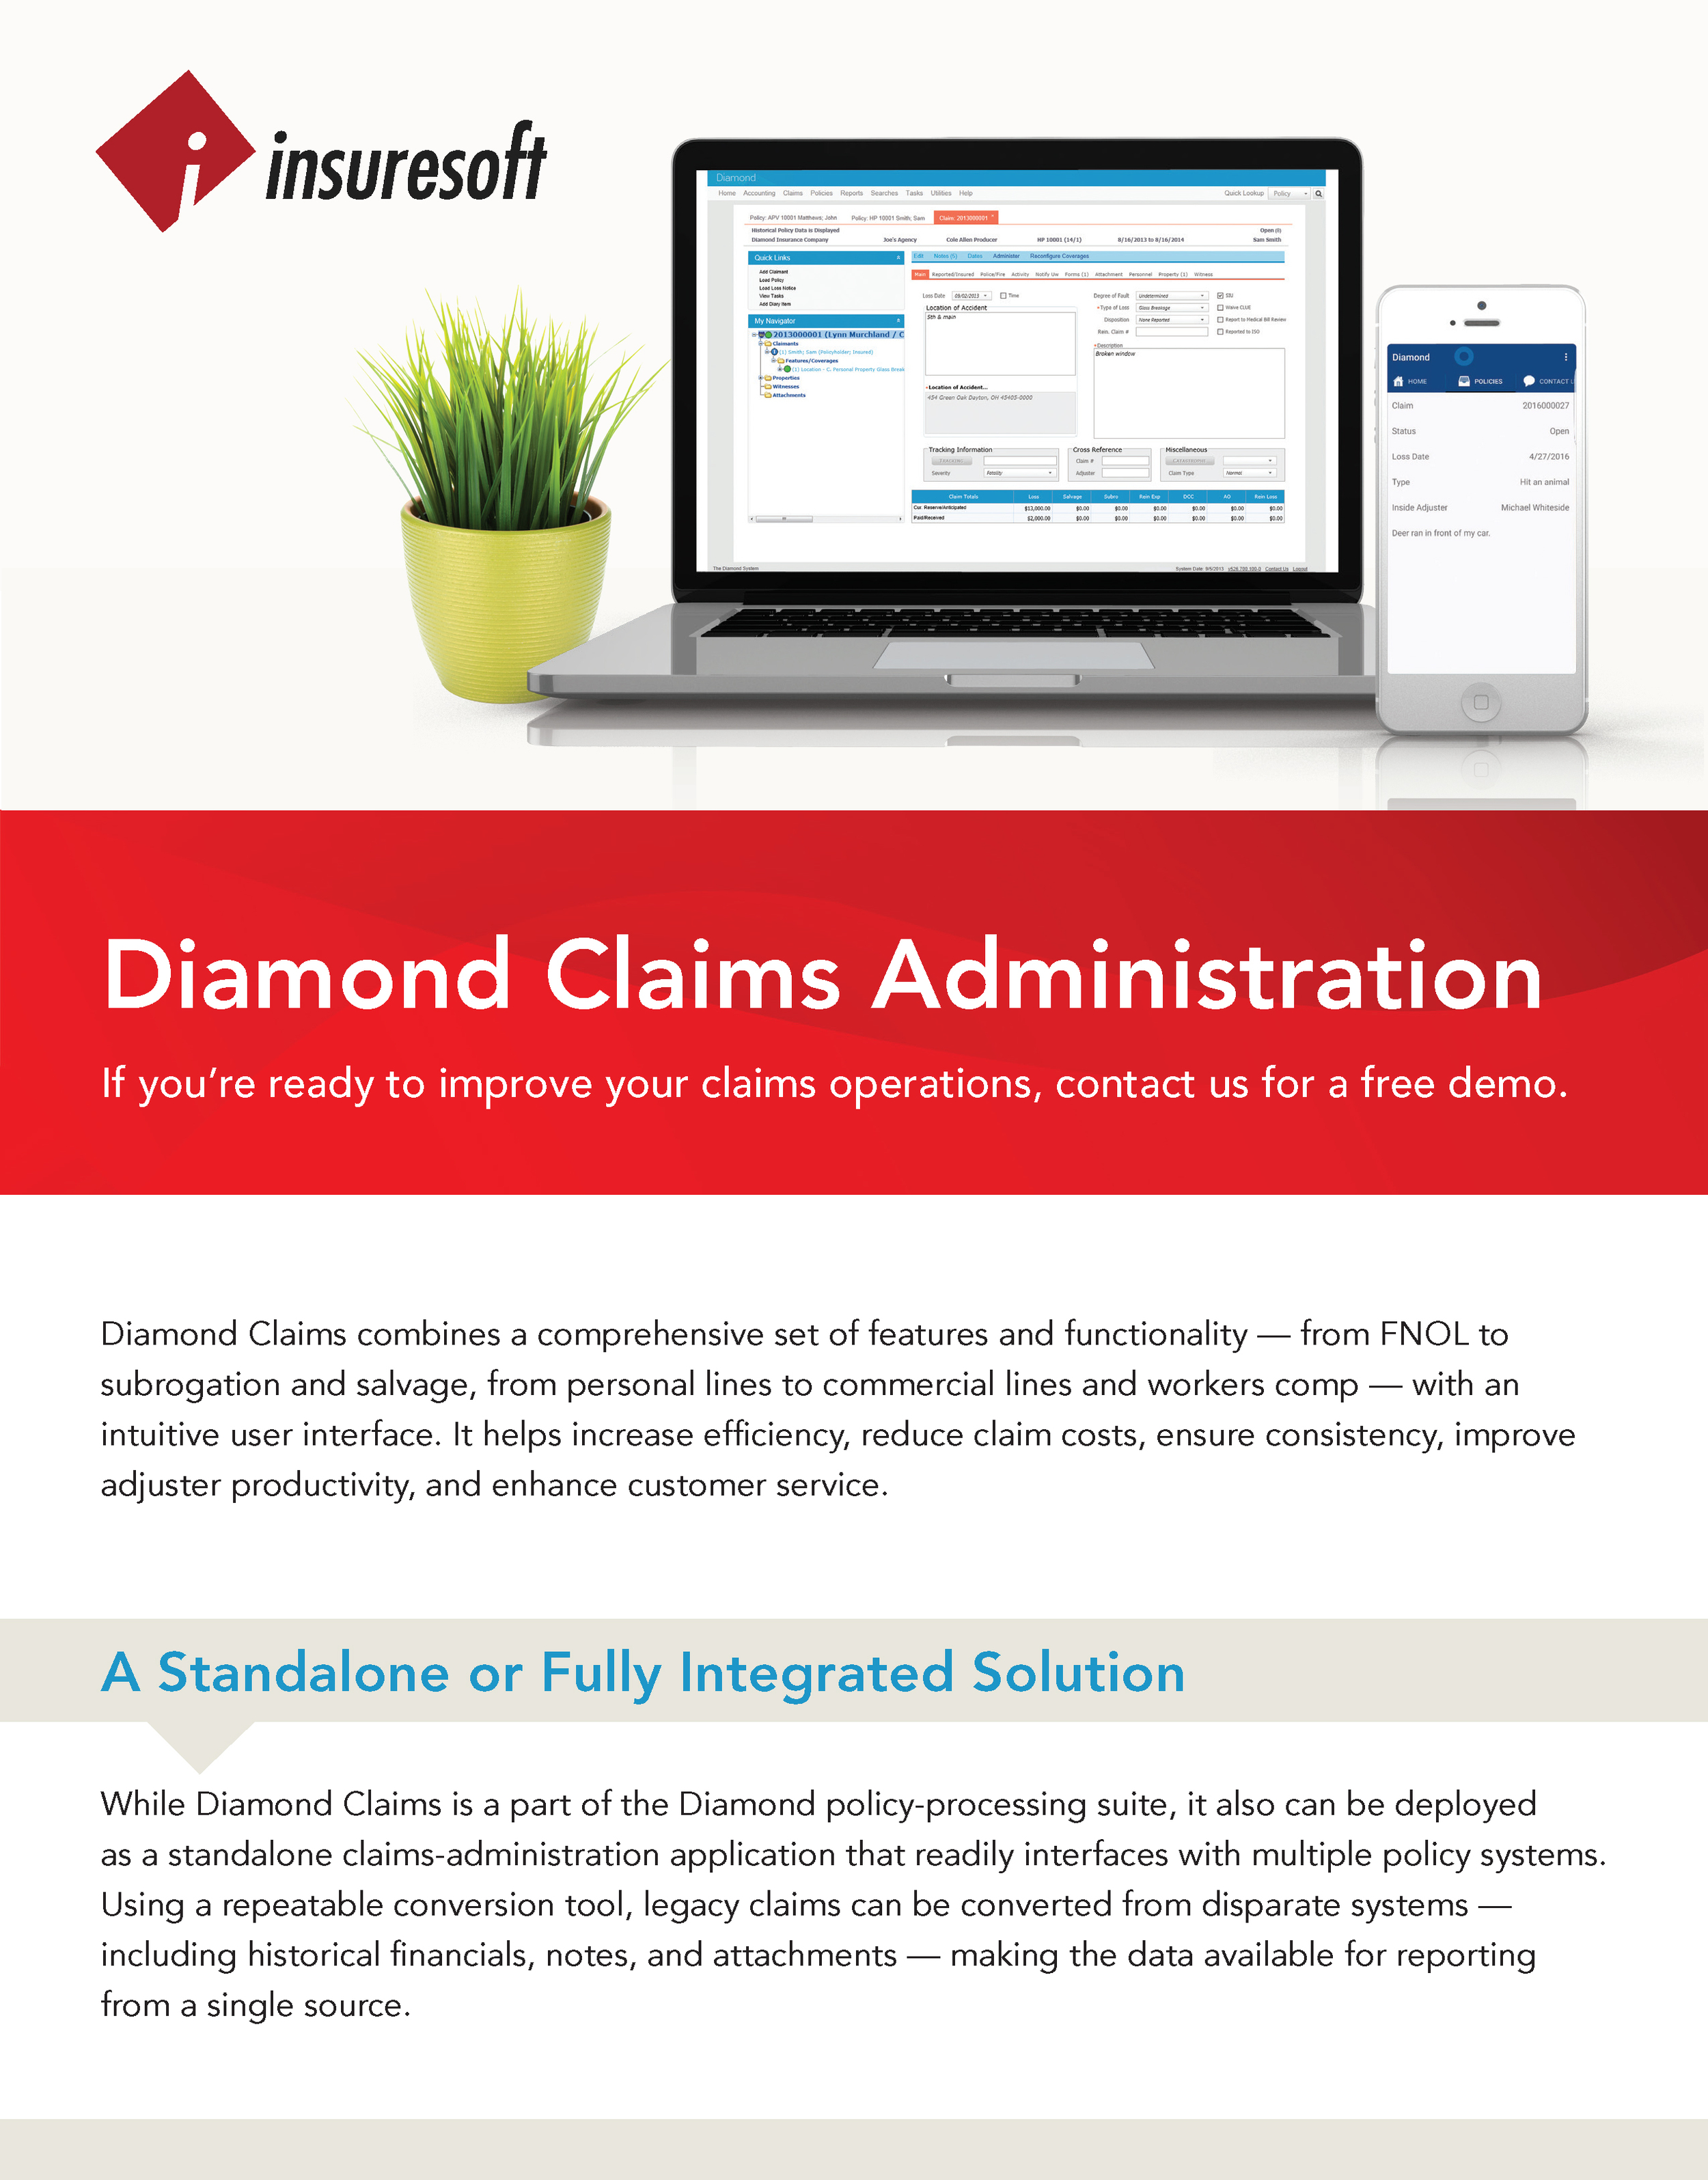 Diamond Claims combines a comprehensive set of features and functionalityfor personal lines to commercial lines and workers comp. Click here for the Diamond Claims Administration Datasheet.